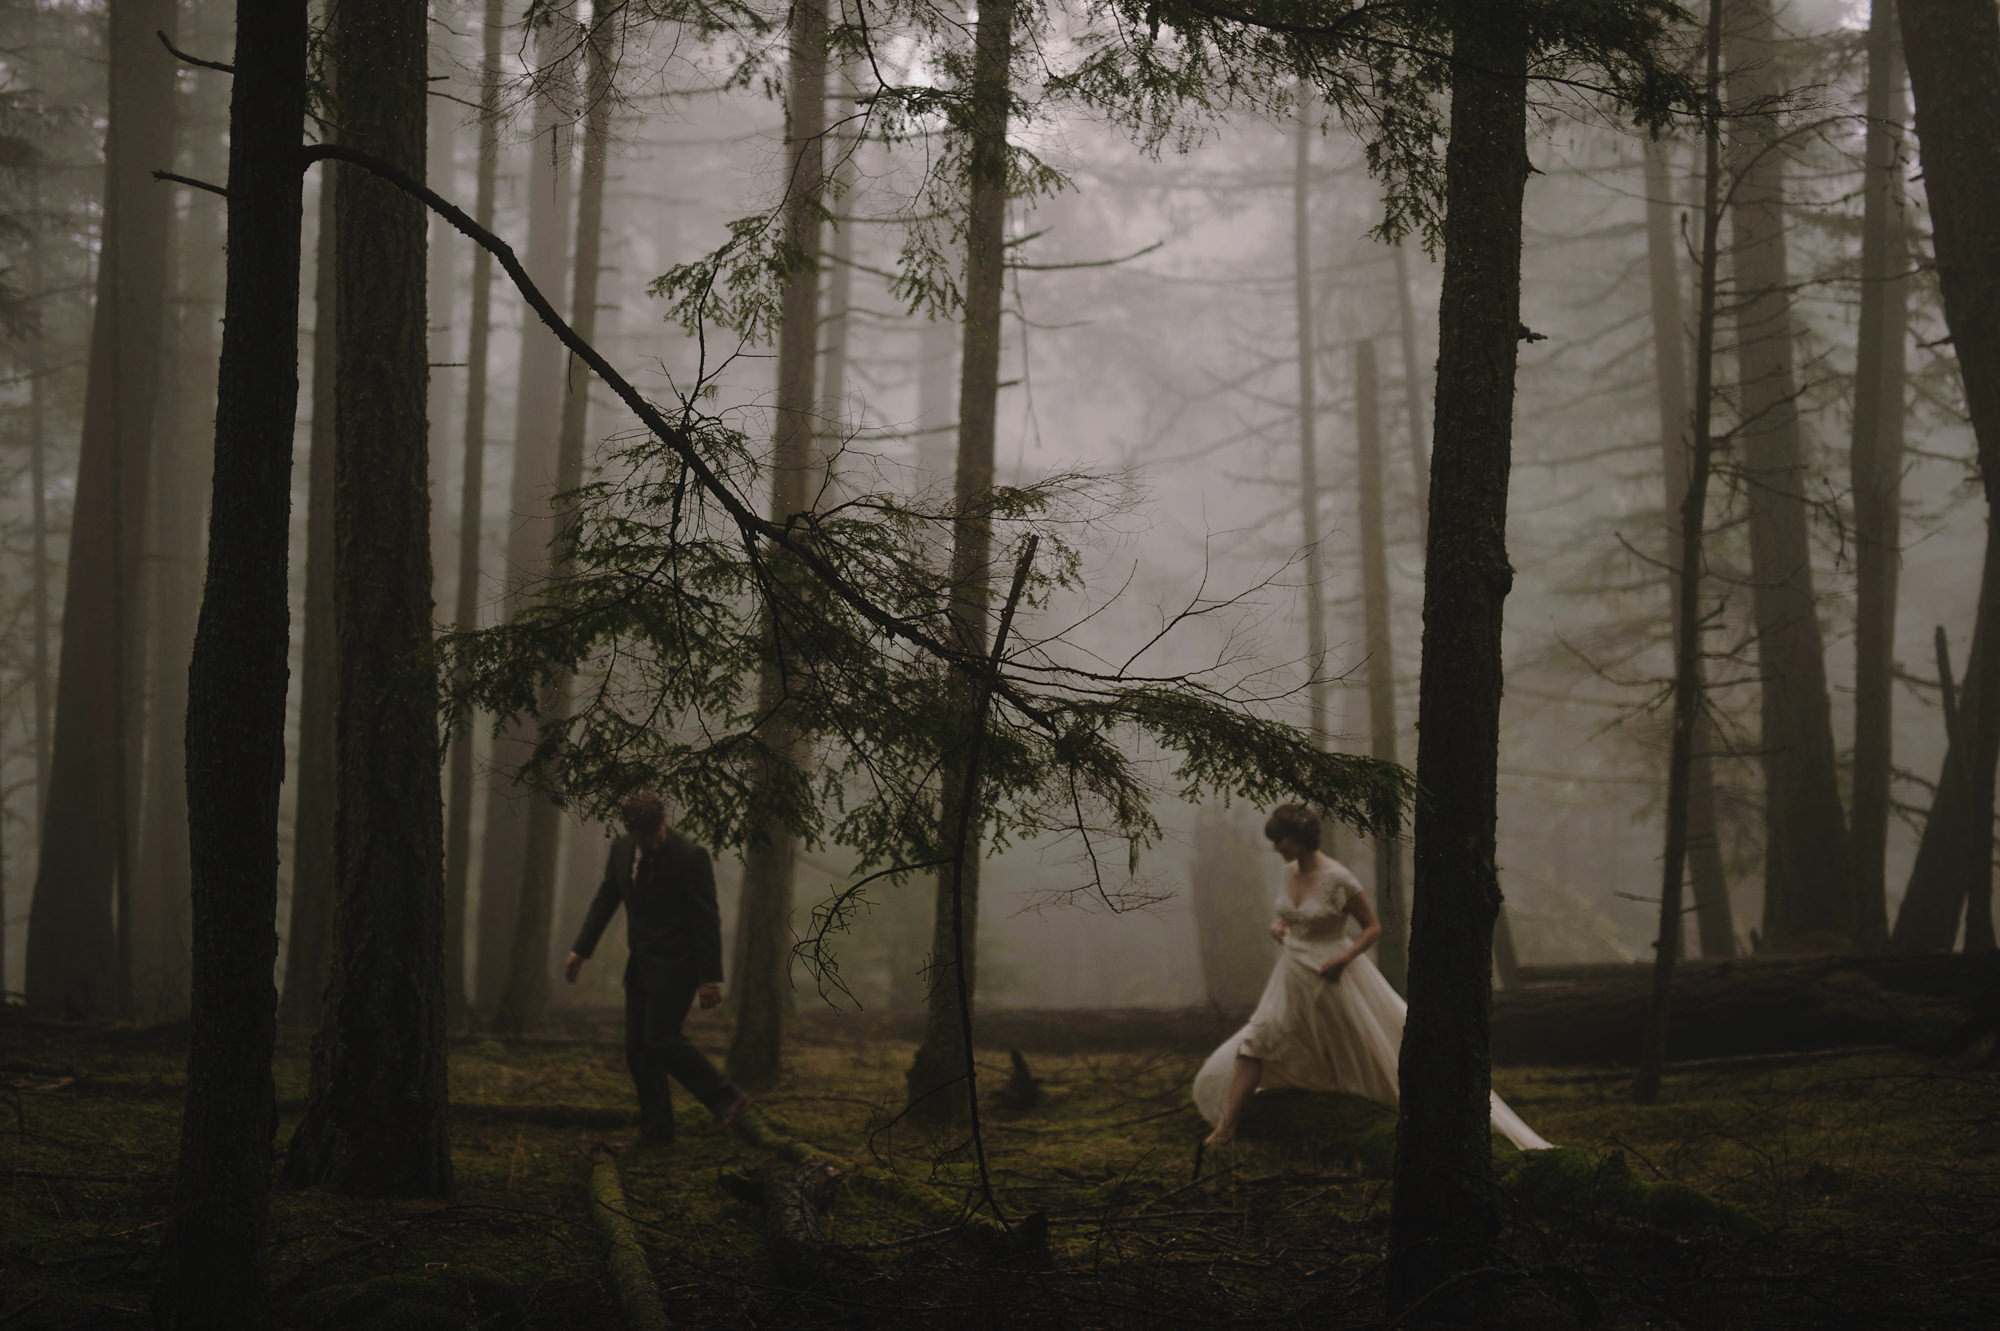 Ethereal photo of newly married couple walking in NW forest by Kristen Marie Parker